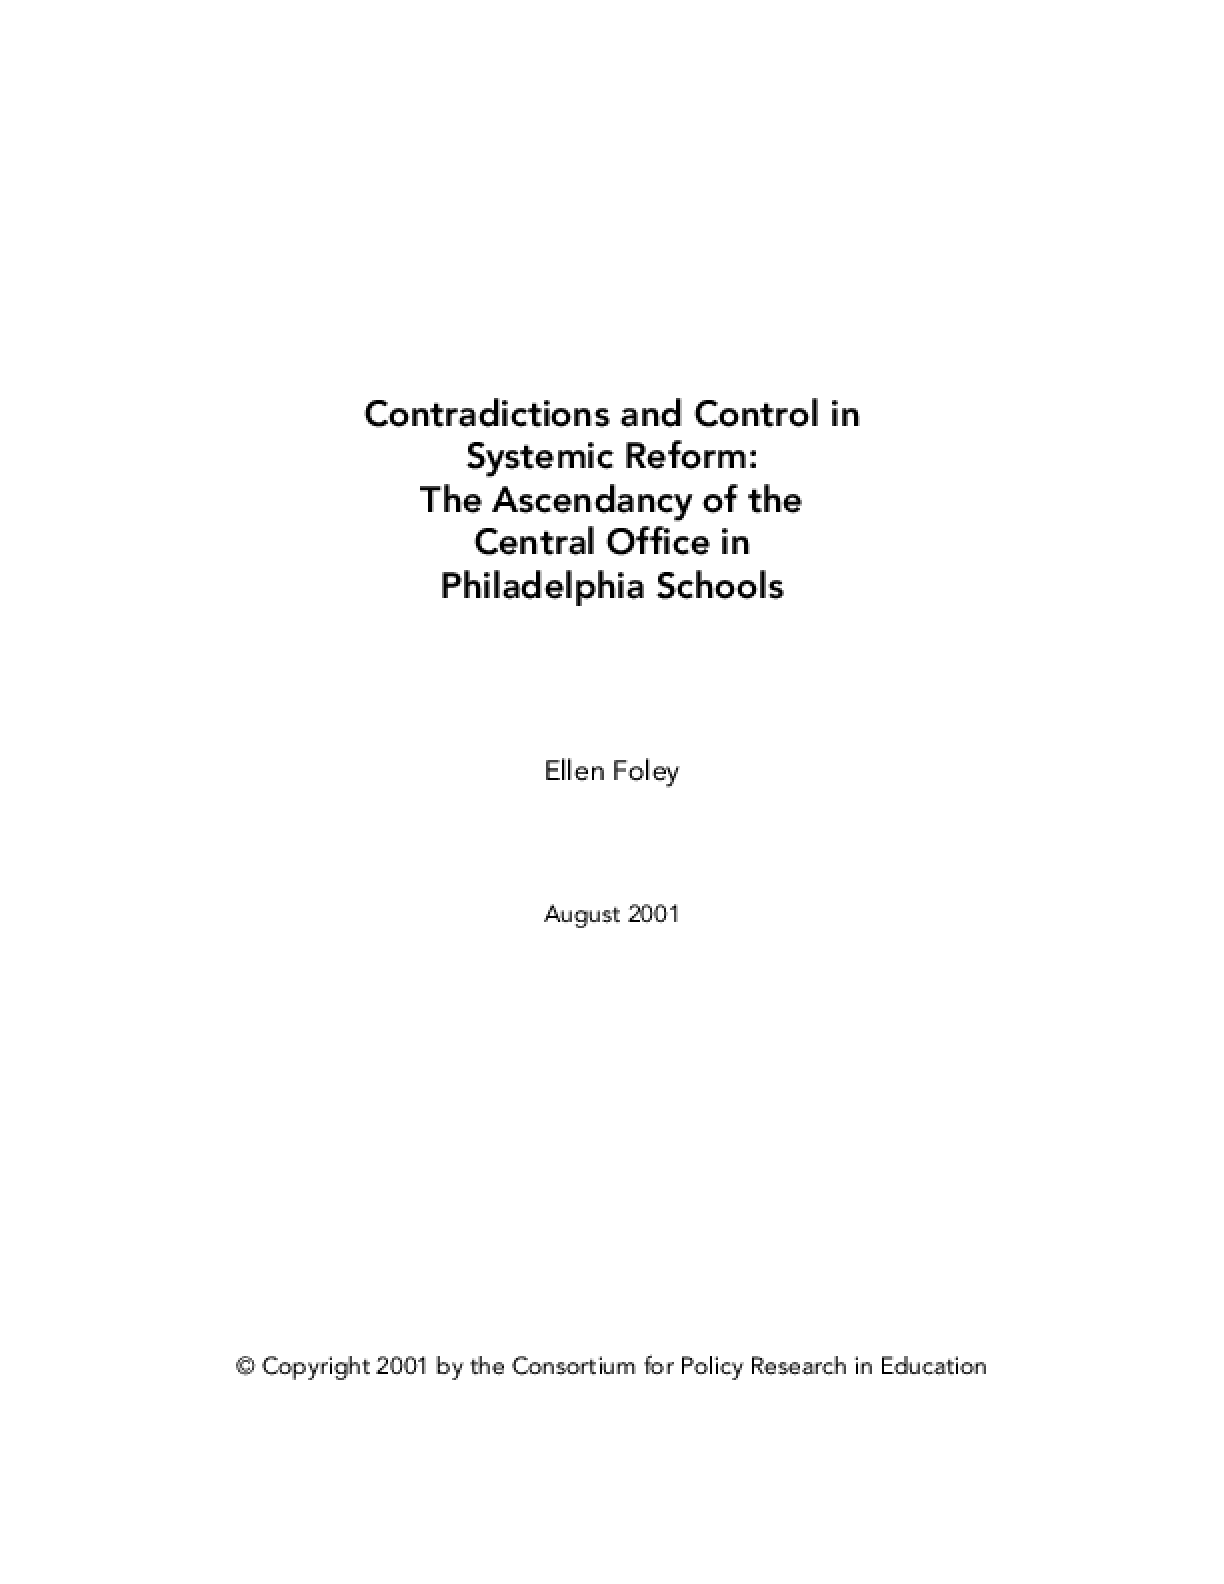 Contradictions and Control in Systemic Reform: The Ascendancy of the Central Office in Philadelphia Schools